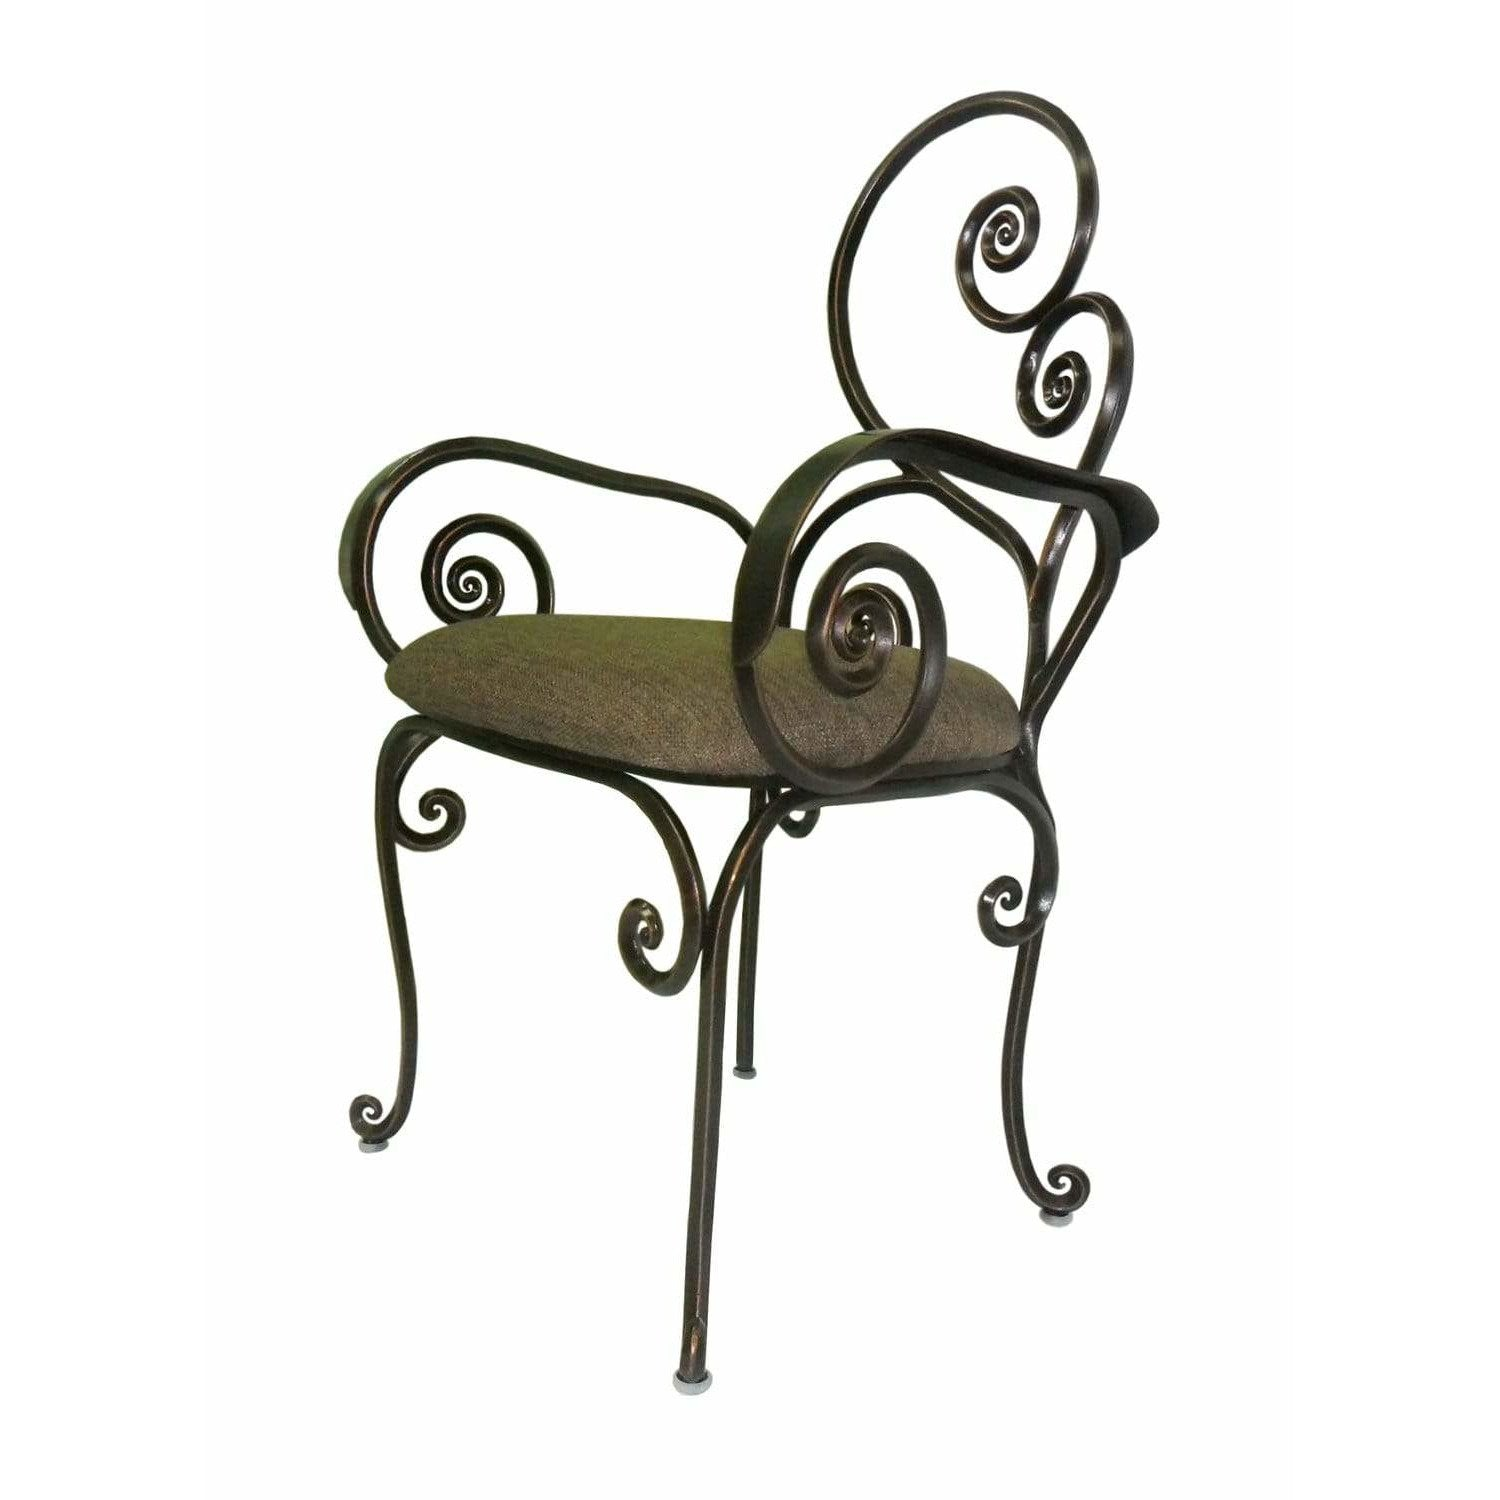 Kalco Lighting Chairs Antique Copper Windsor Indoor-Outdoor Chair With Arms By Kalco Lighting F781